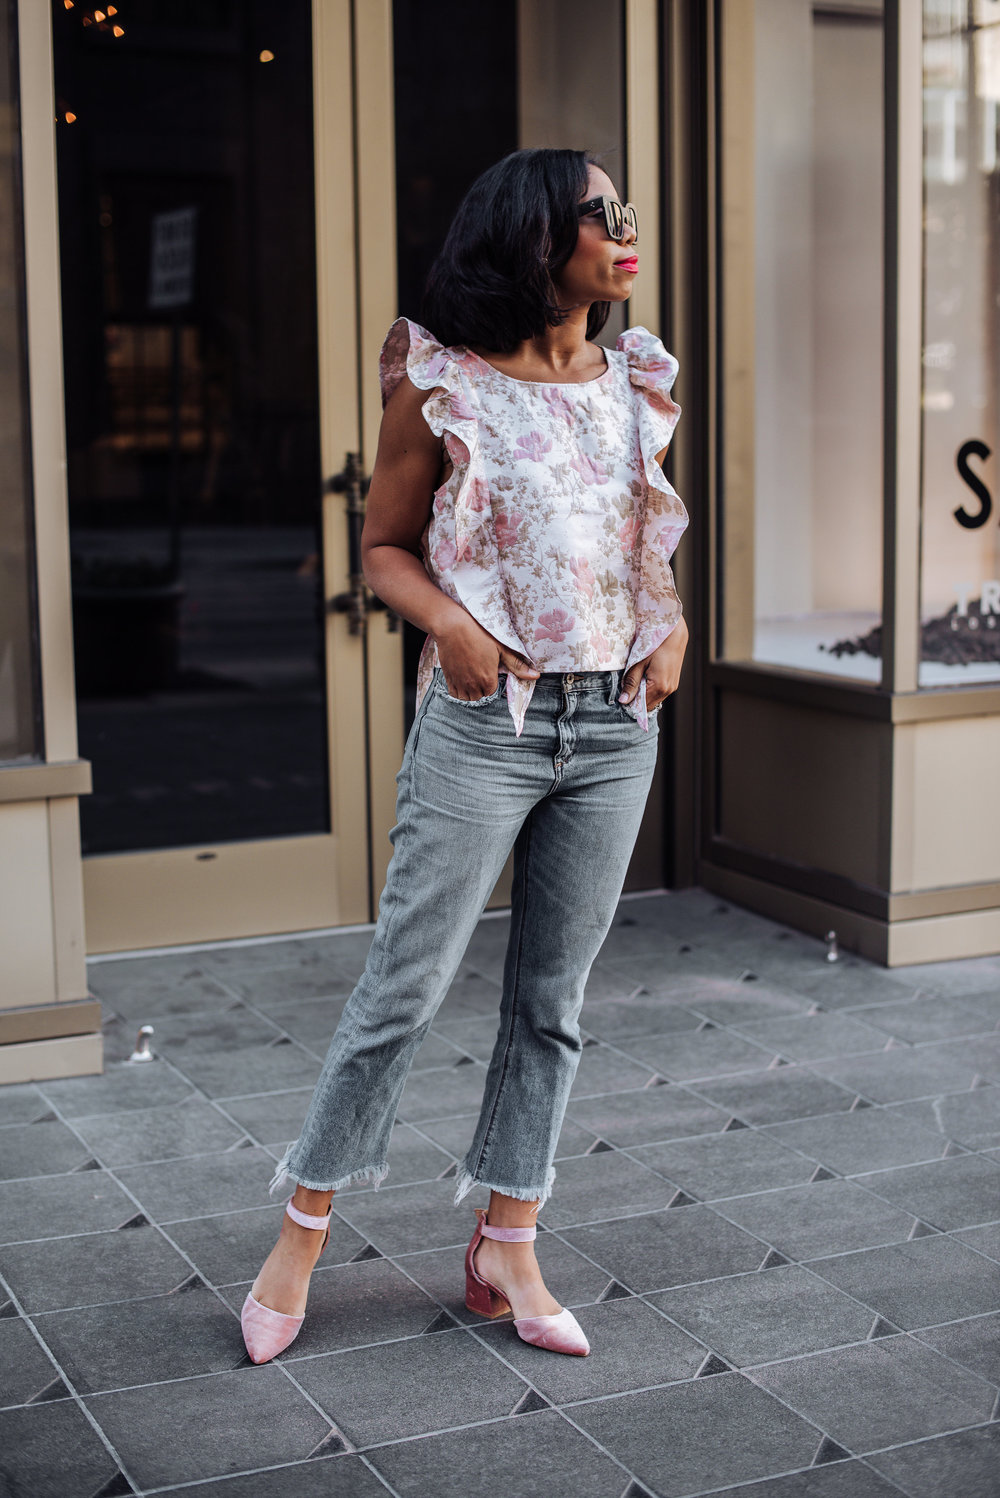 Ruffle Top Nordstrom Spring Outfits .JPG